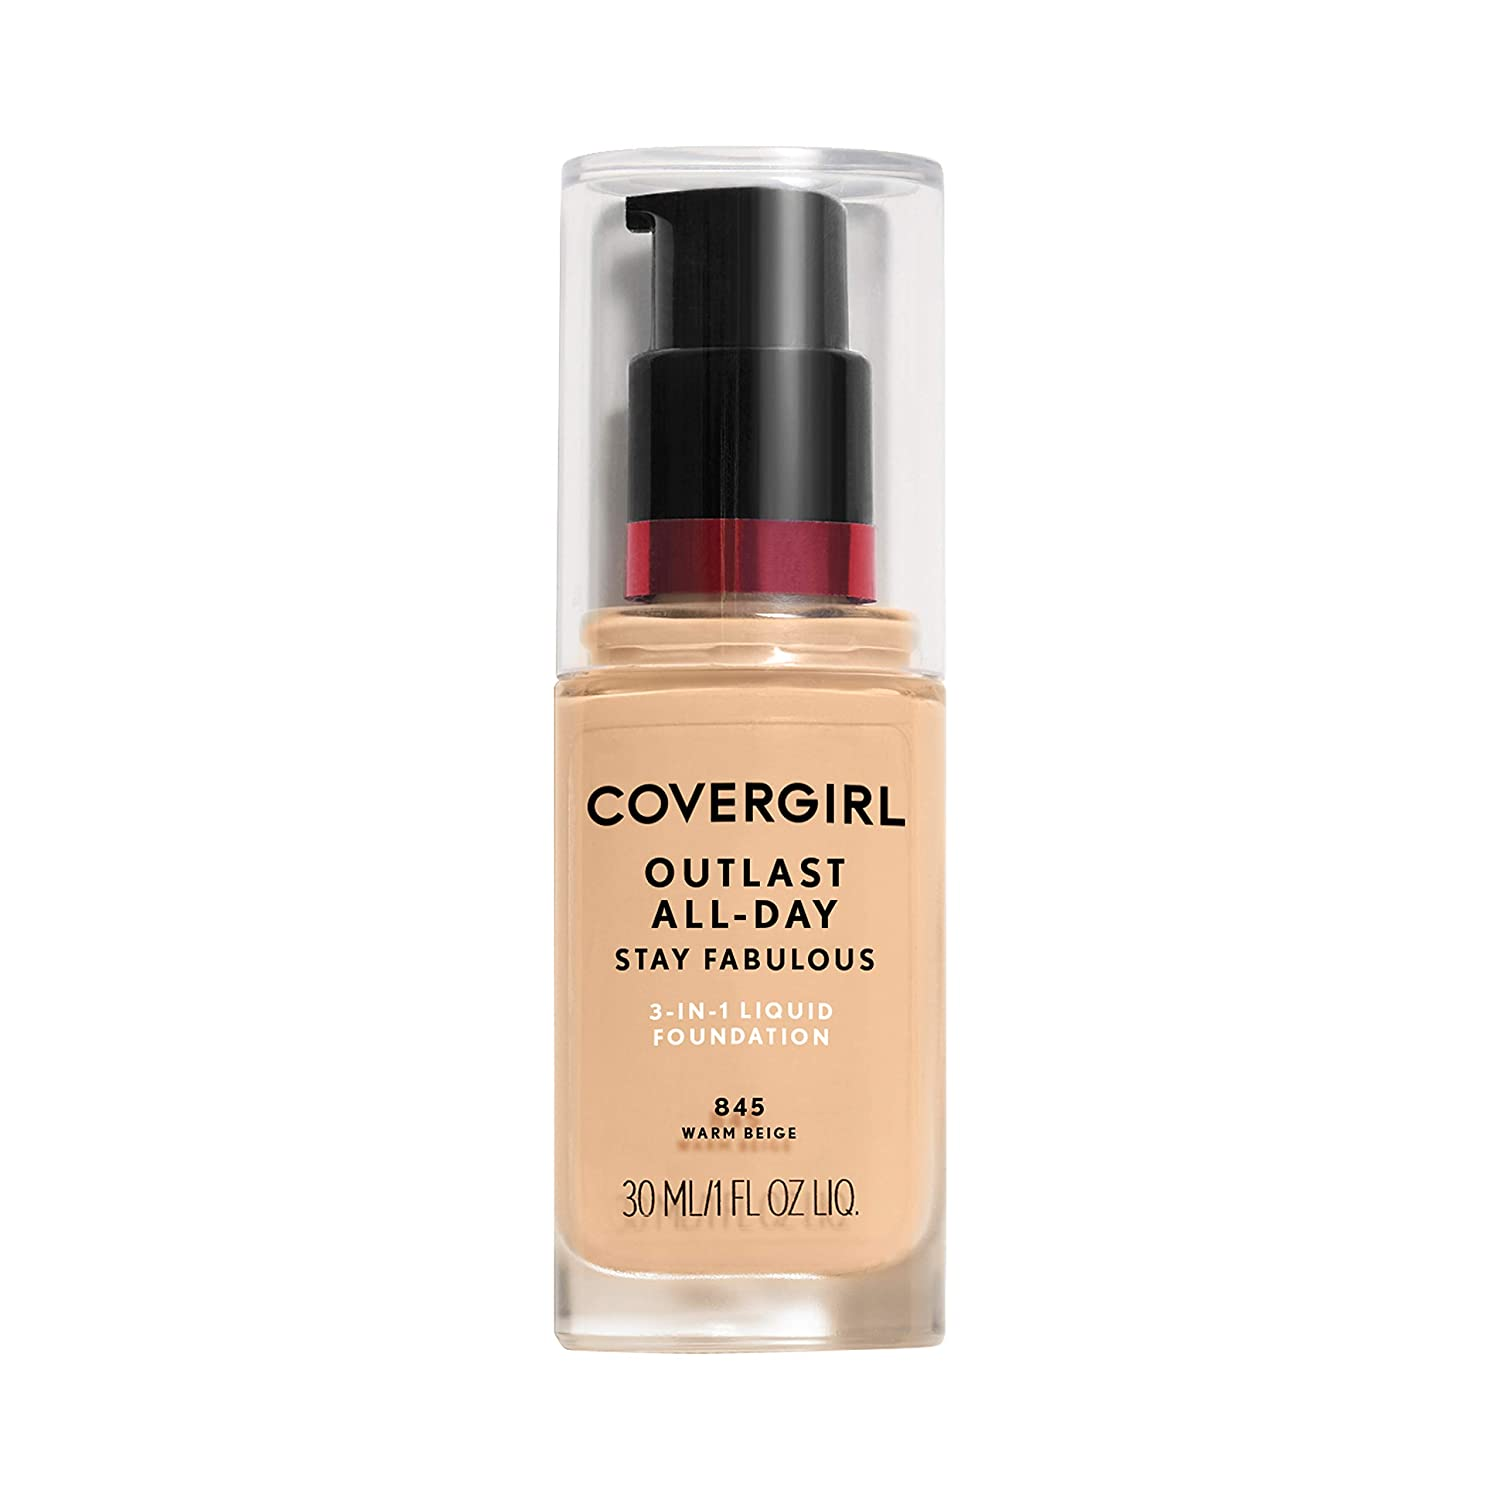 WHOLESALE COVERGIRL OUTLAST ALL-DAY STAY FABULOUS 3-IN-1 FOUNDATION 1 OZ - WARM BEIGE 845 - 72 PIECE LOT